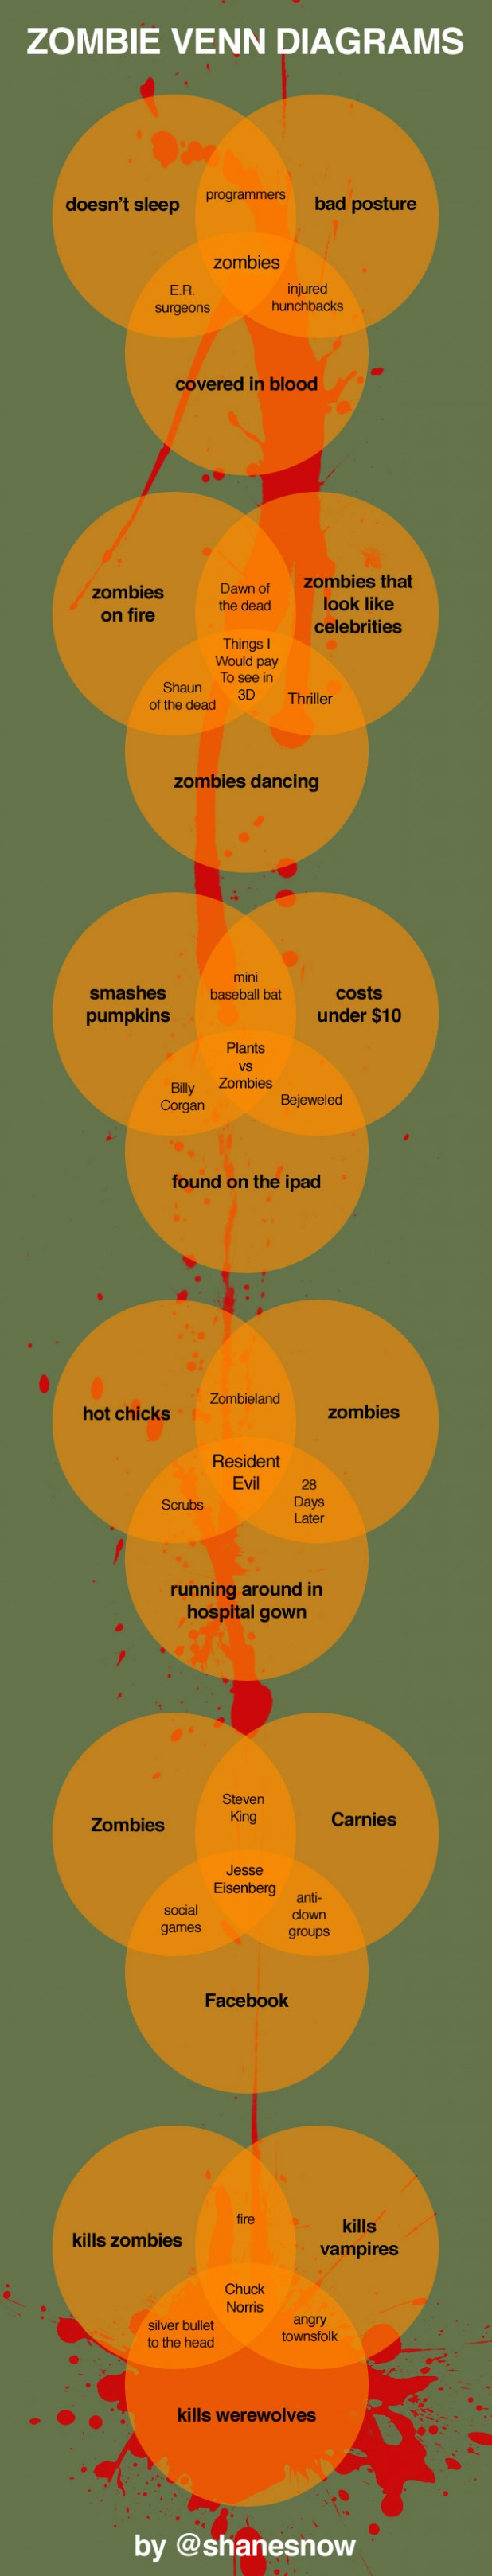 hight resolution of ghost zombie venn diagram wiring diagrams lose